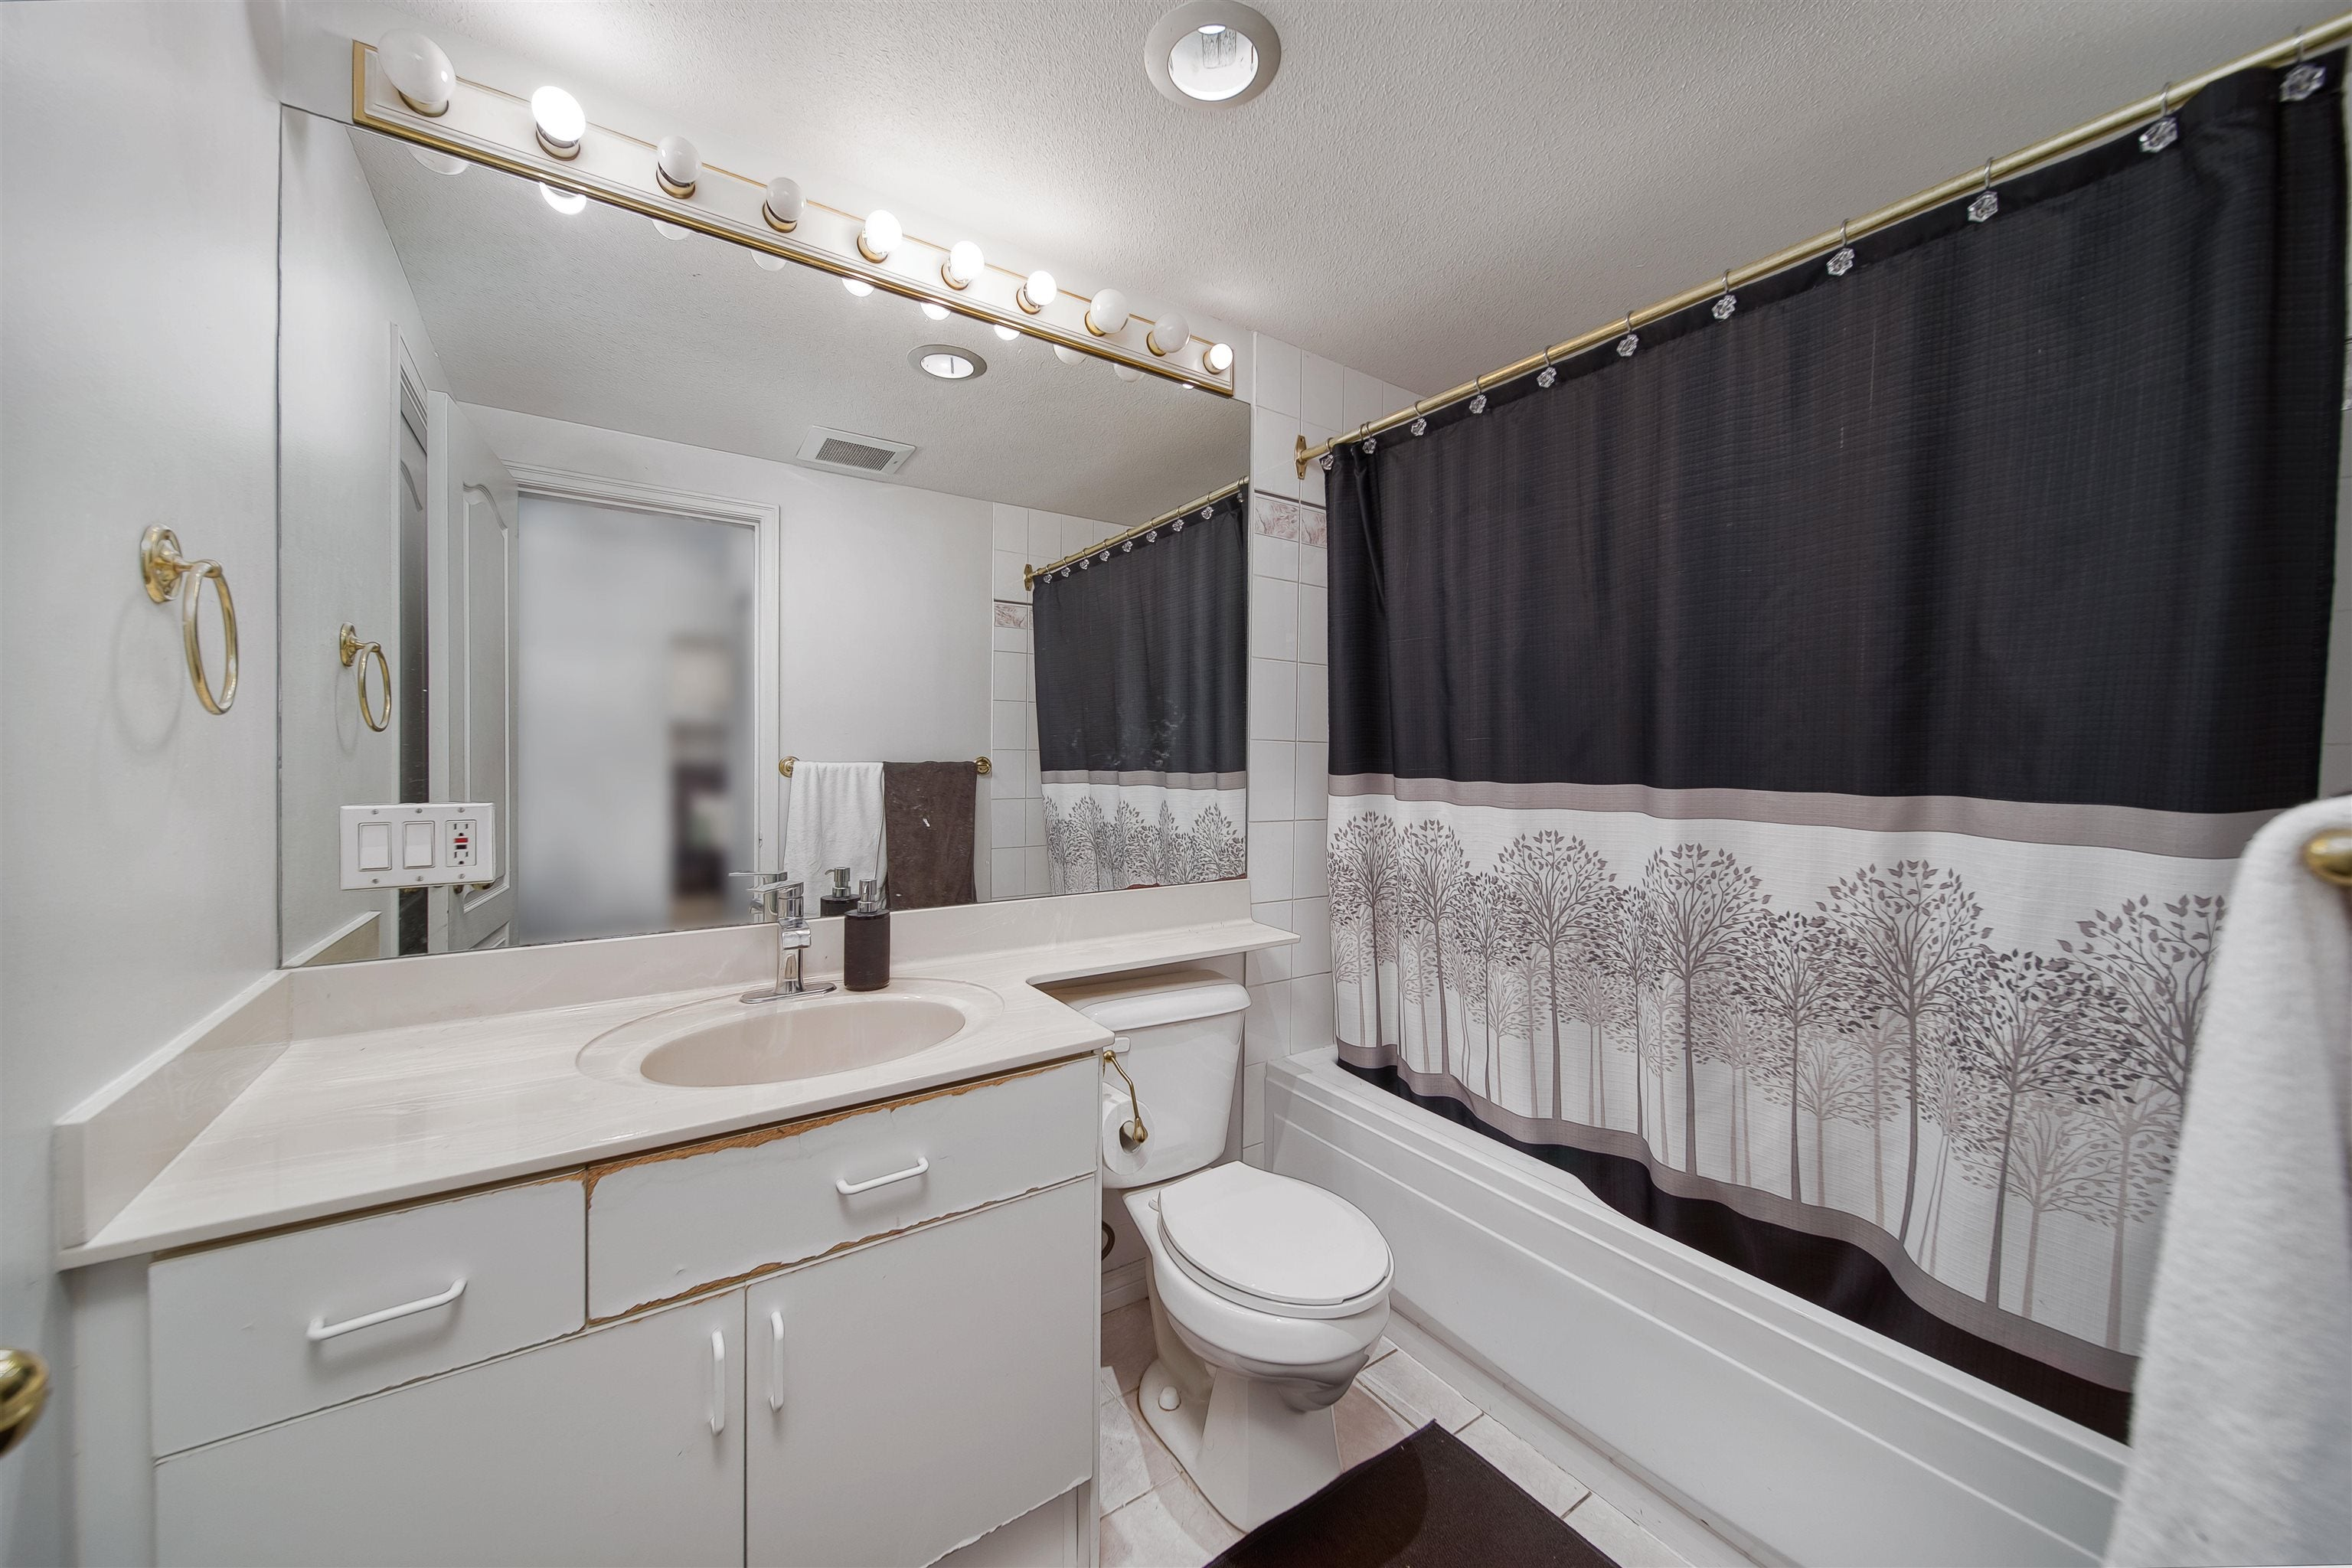 303 140 E 14TH STREET - Central Lonsdale Apartment/Condo for sale, 1 Bedroom (R2618094) - #5